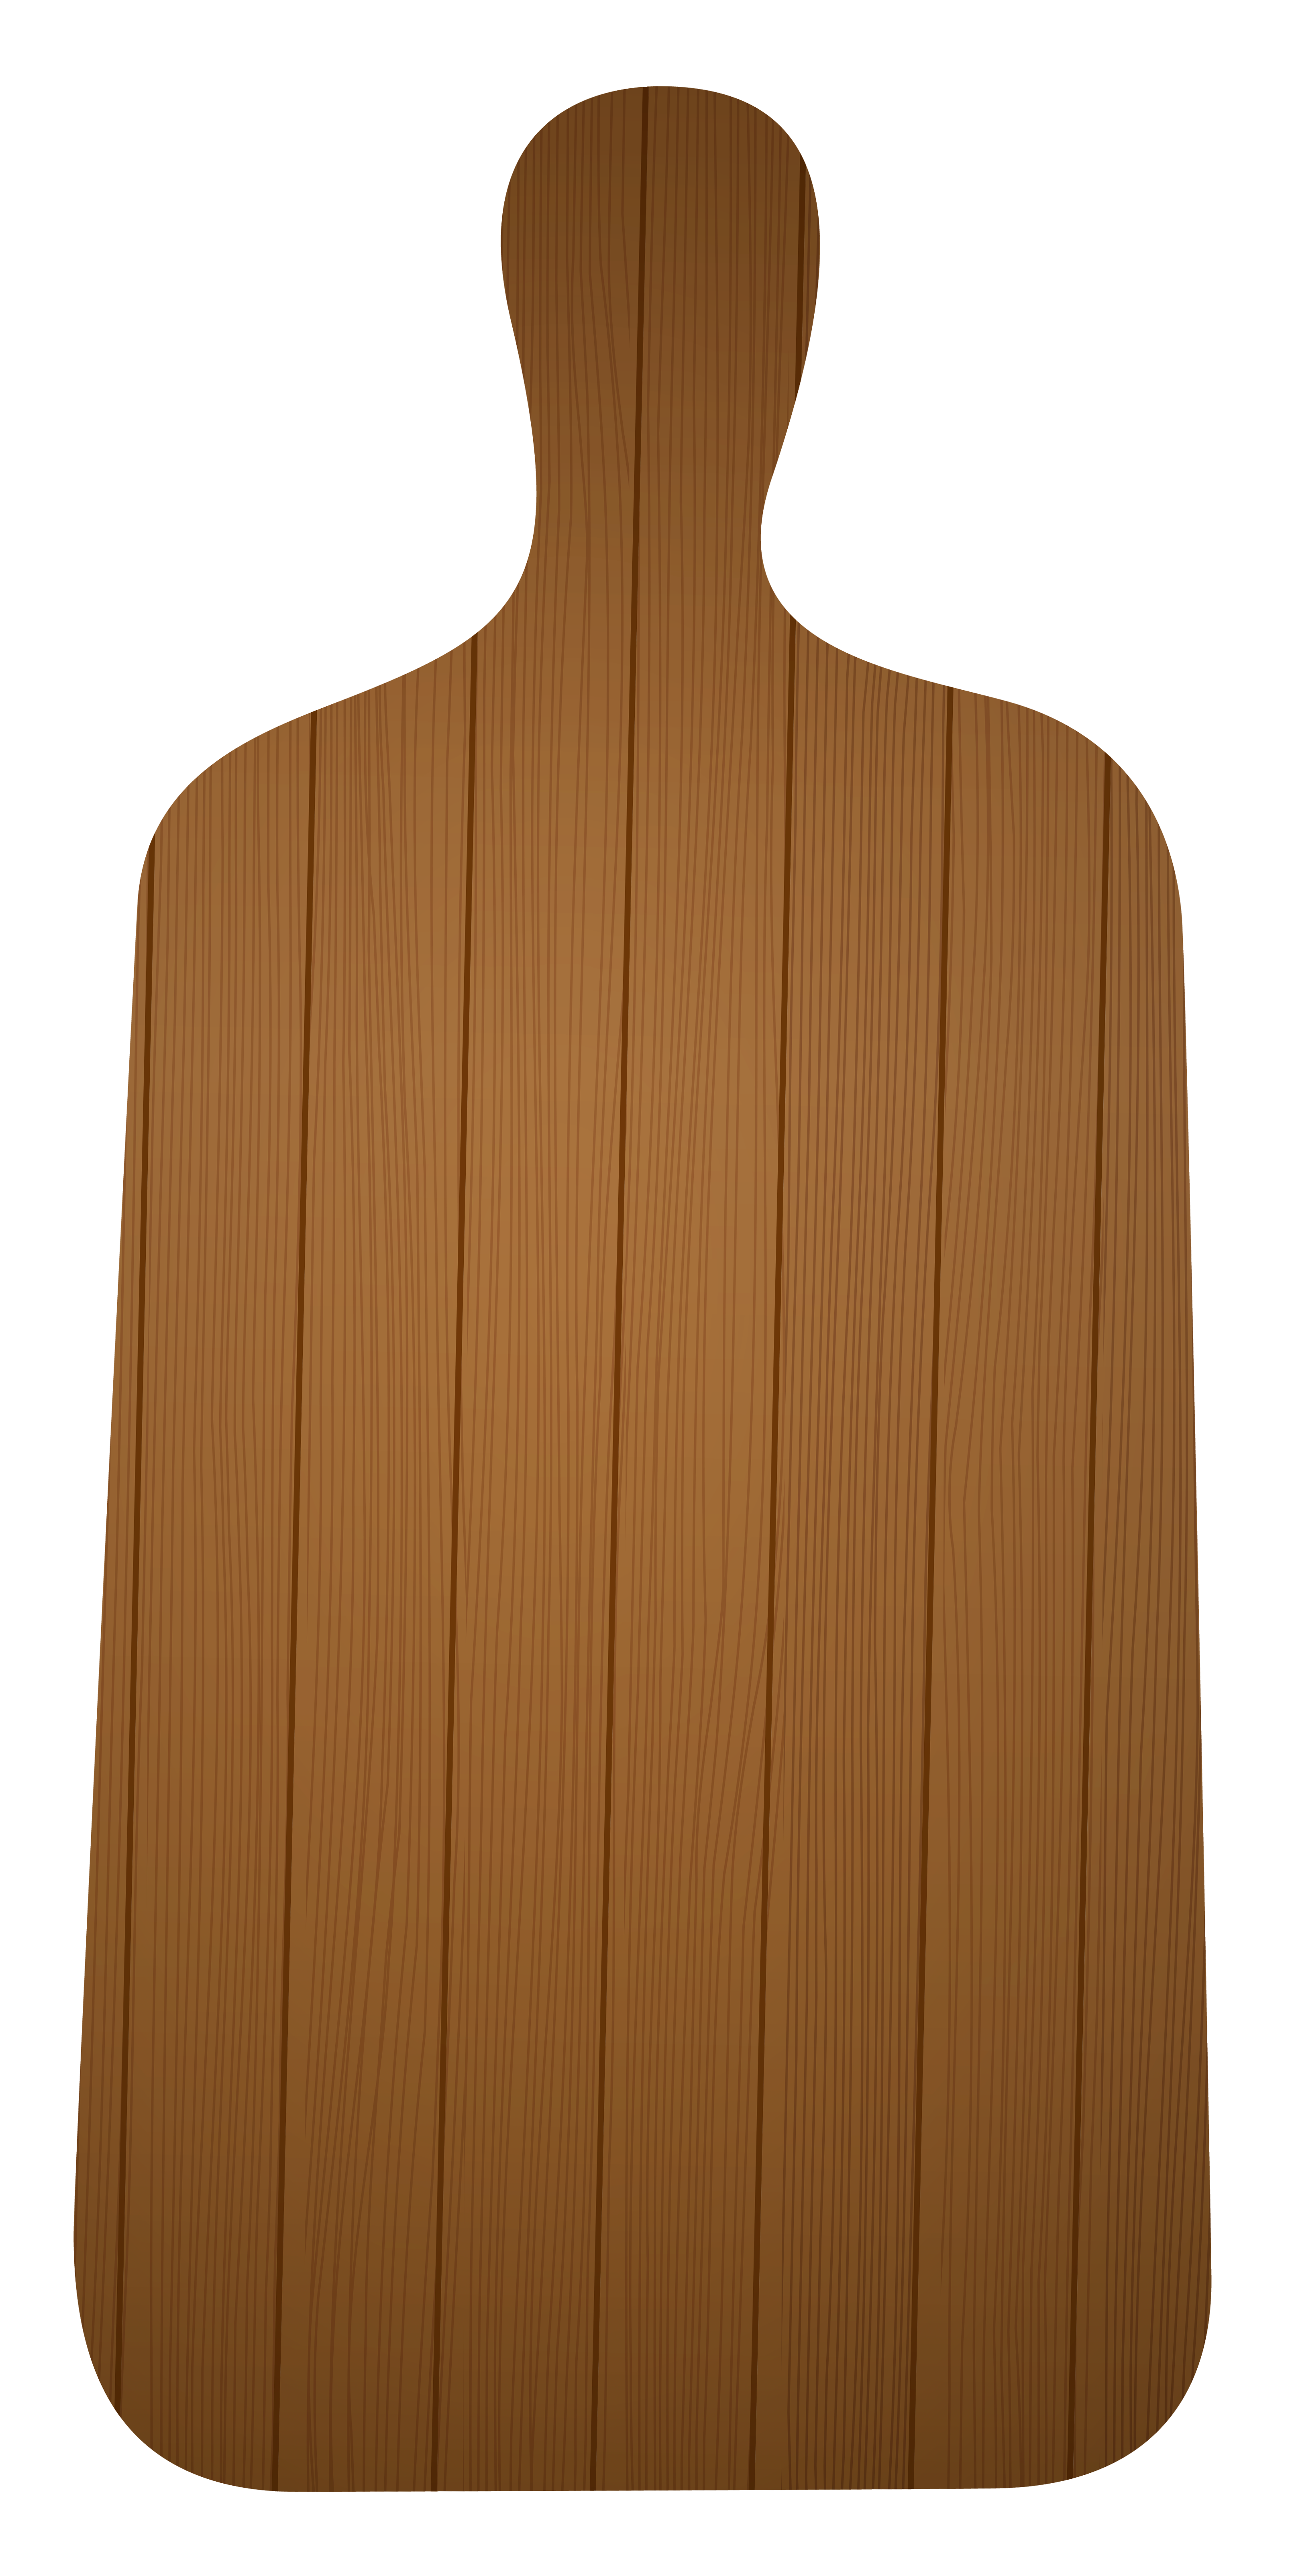 Wooden car clipart clipart freeuse stock Wooden Cutting Boards PNG Clipart - Best WEB Clipart clipart freeuse stock